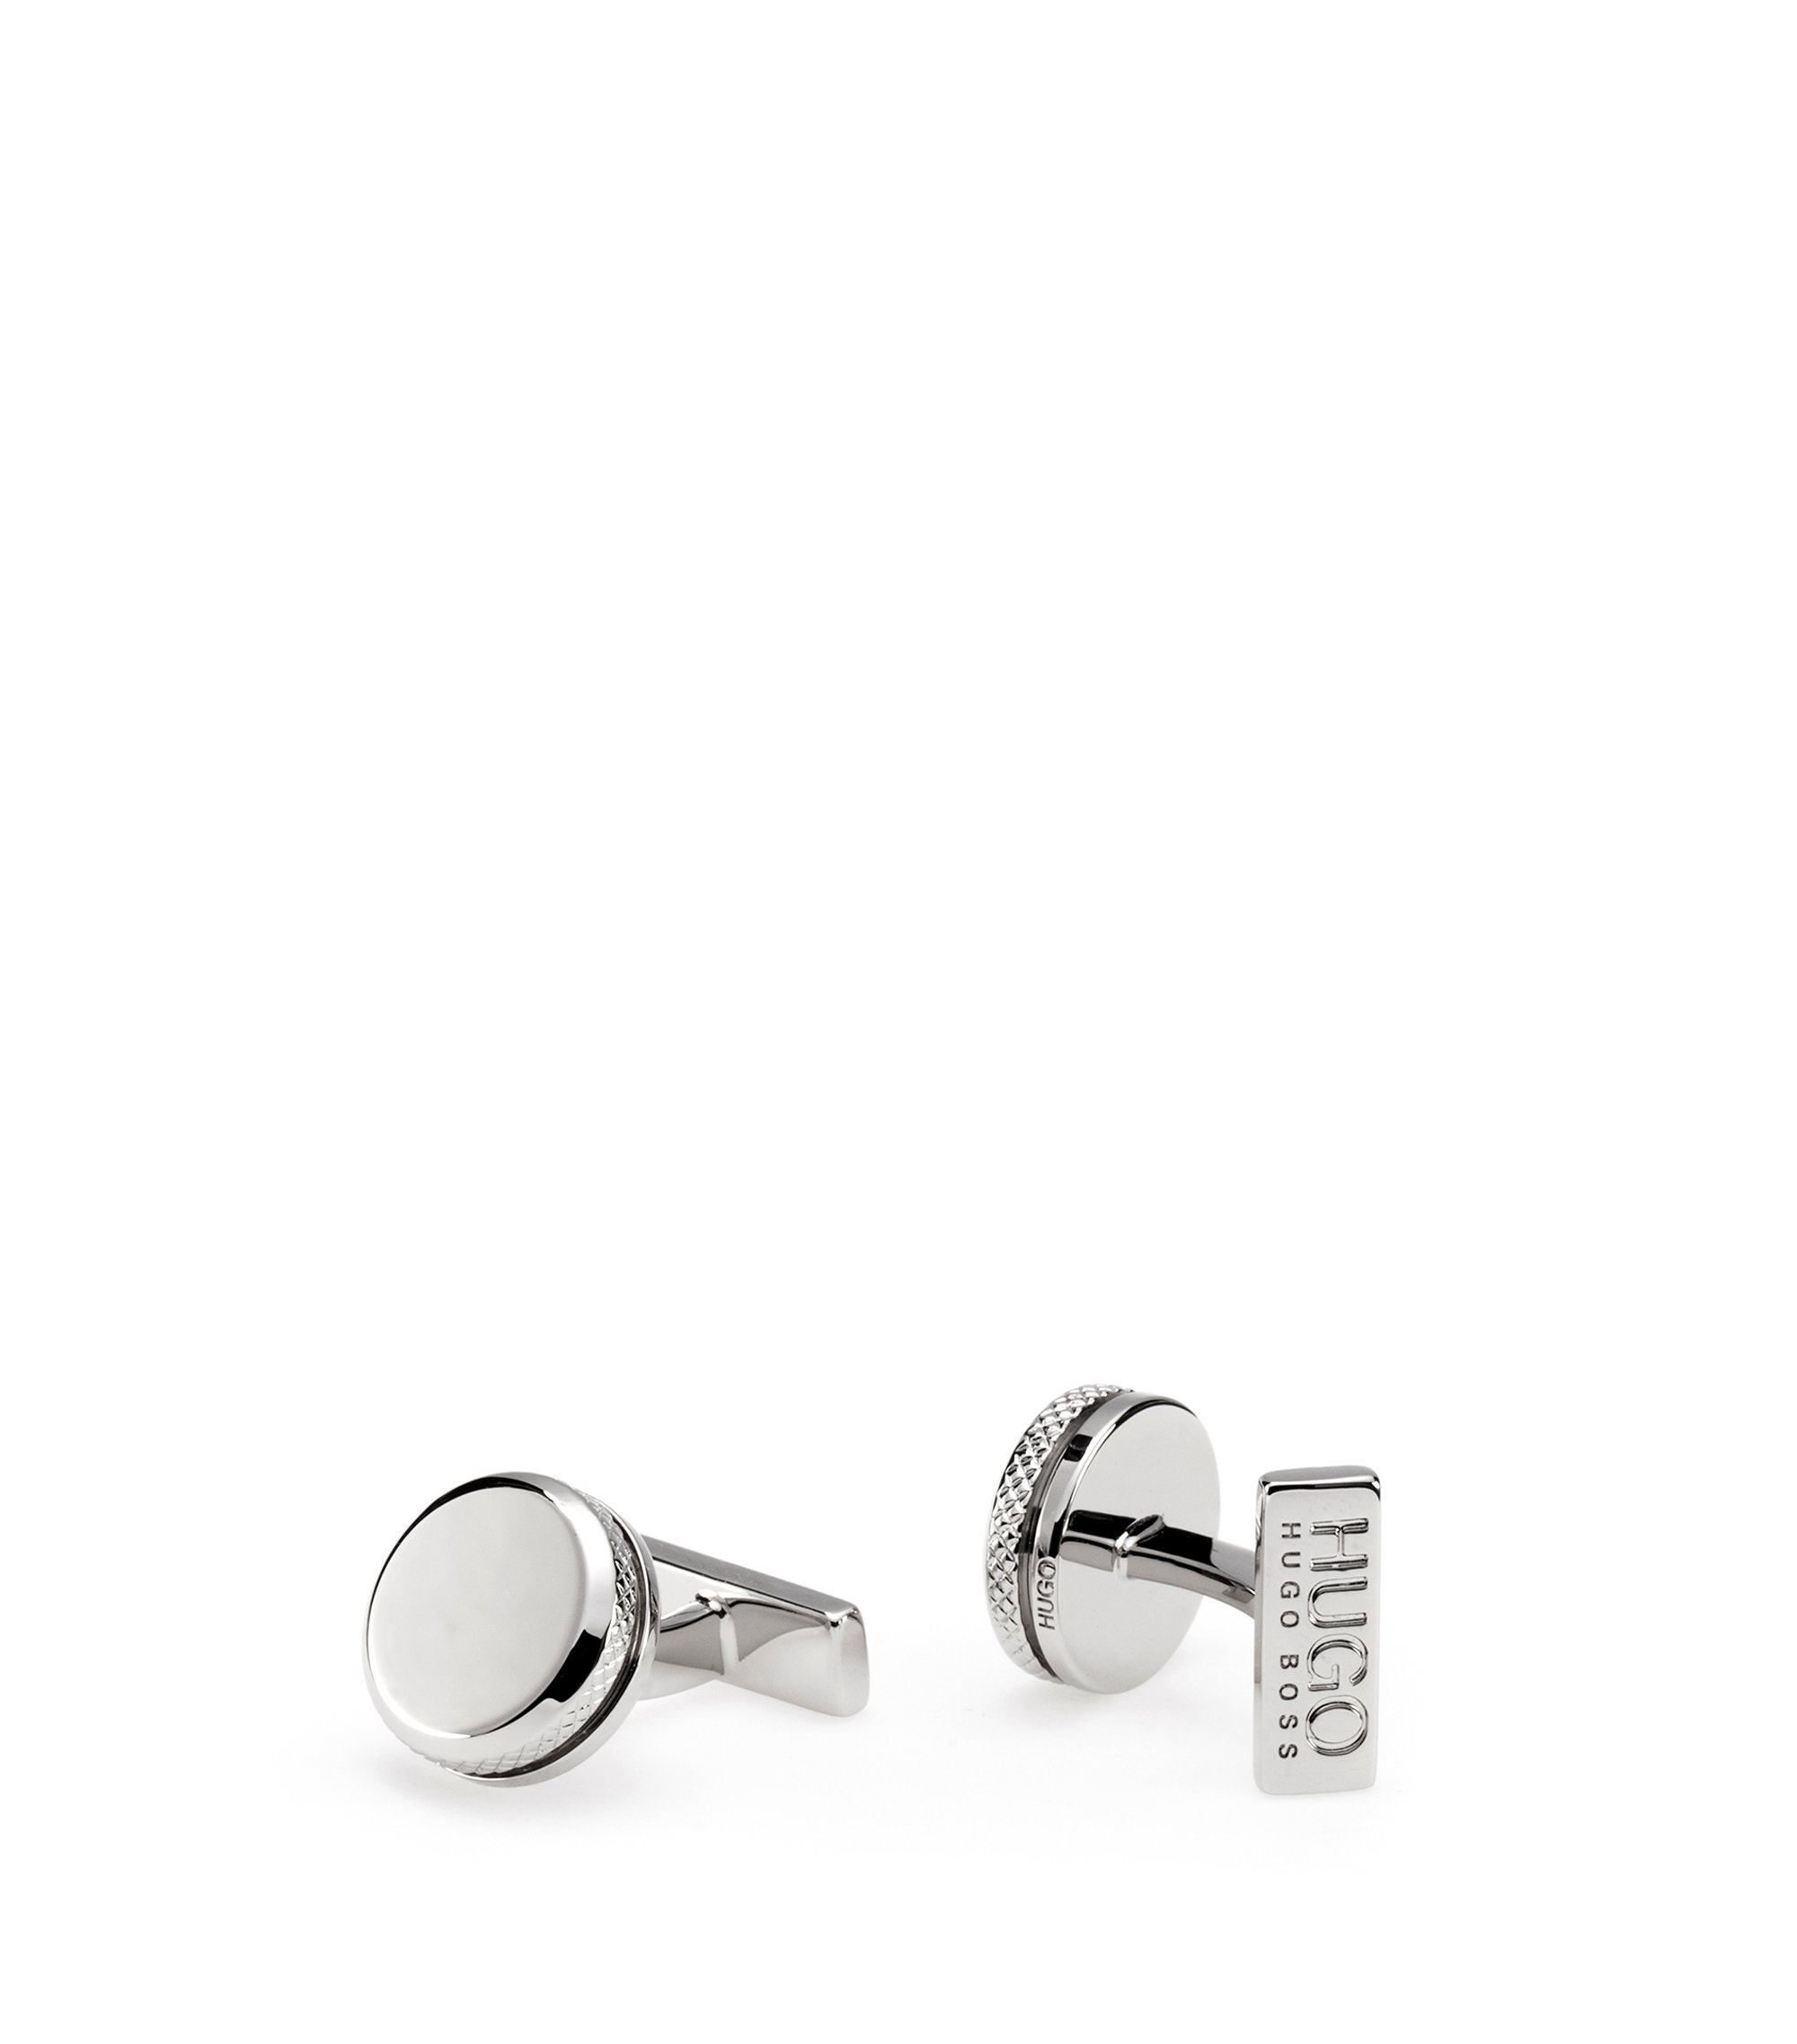 Round silver-effect cufflinks in brass with engraved edging, Silver